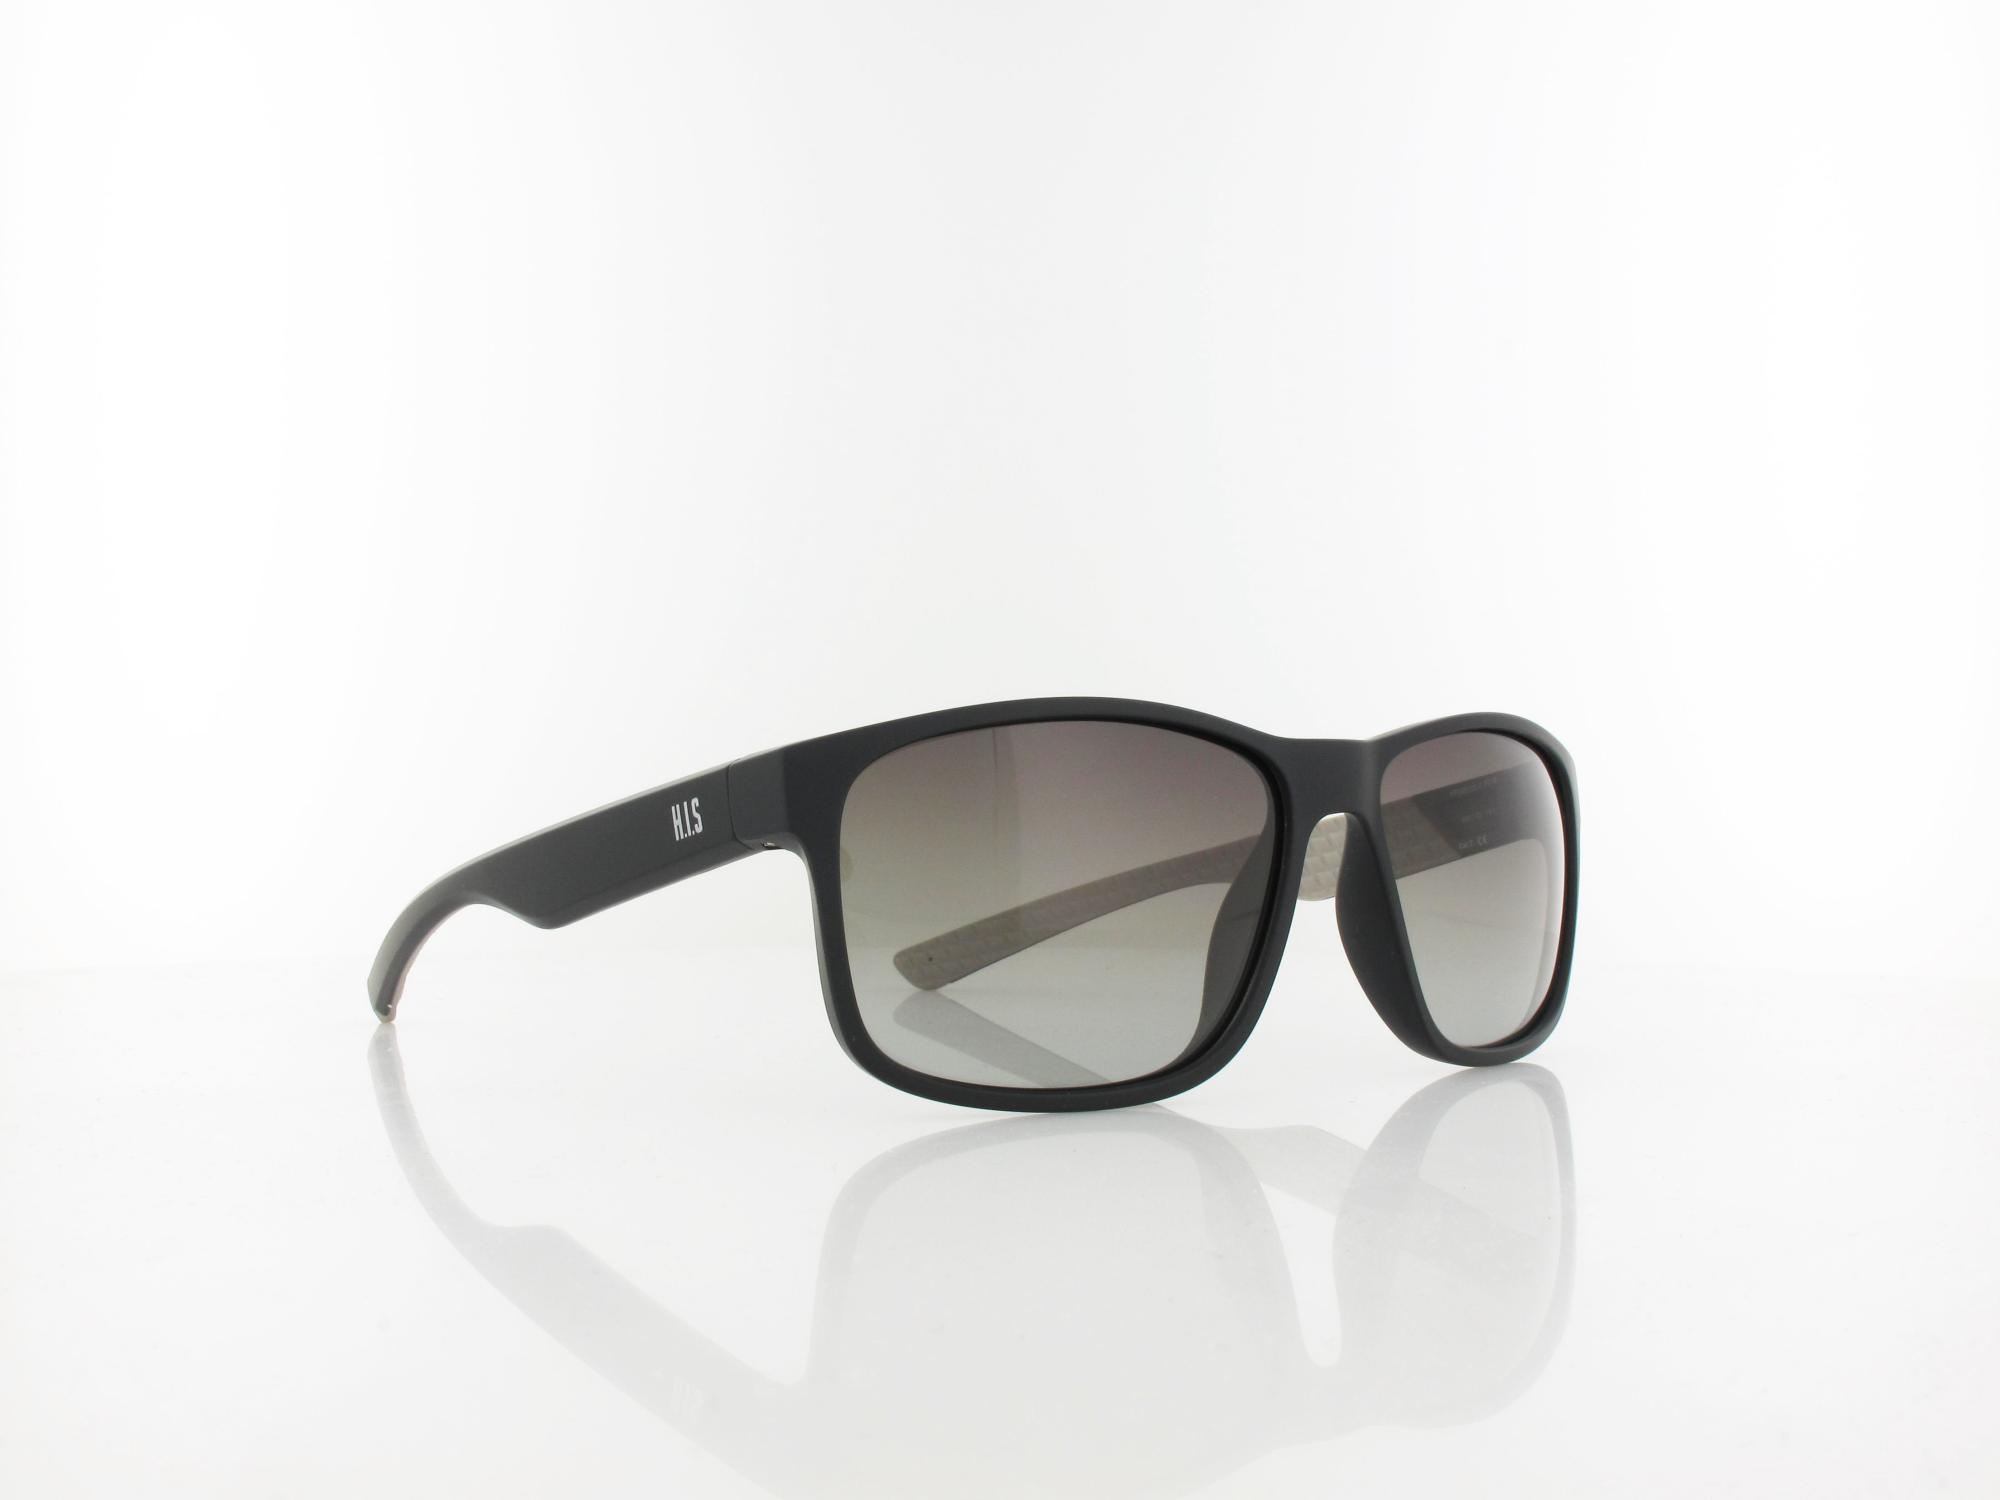 HIS polarized | HPS98112-2 60 | black / green gradient polarized